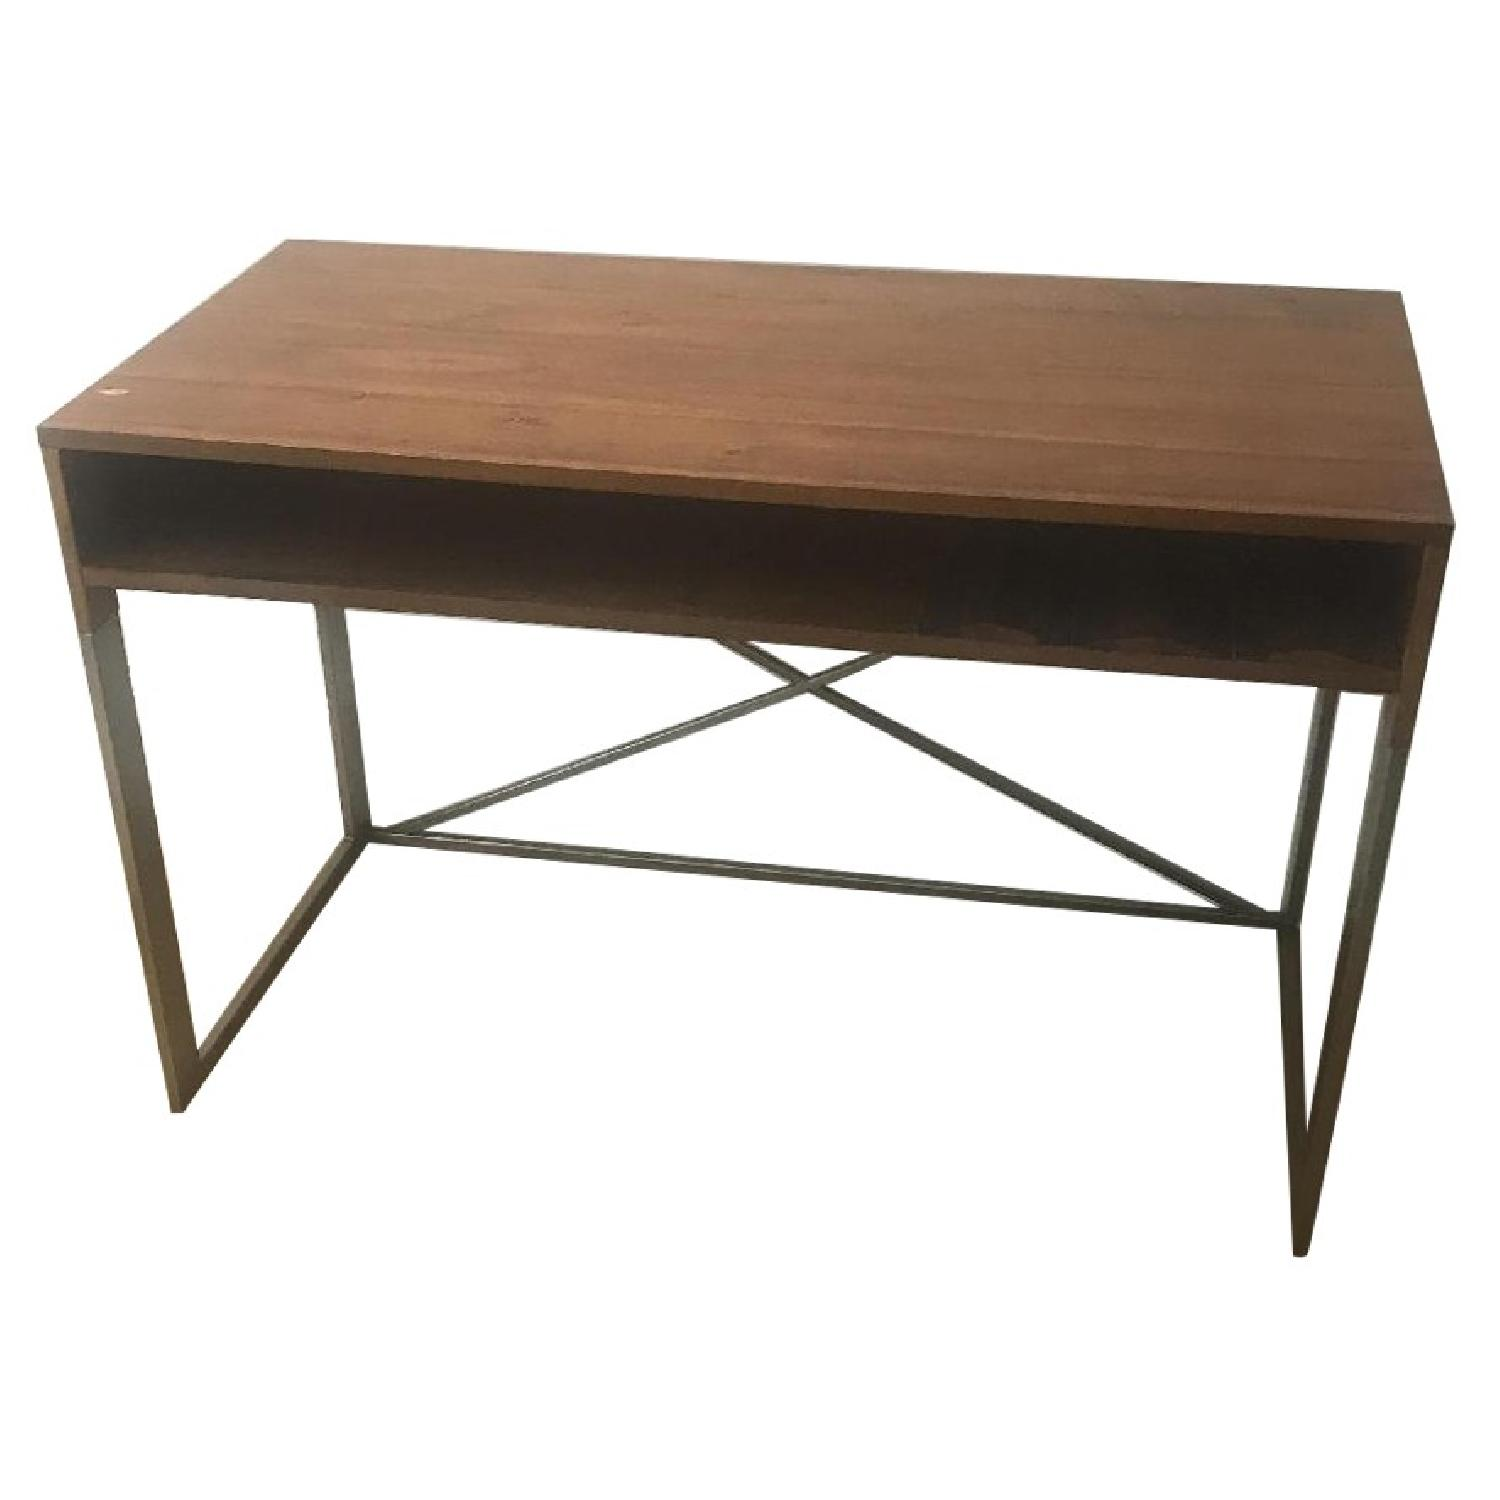 Wood & Metal Desk